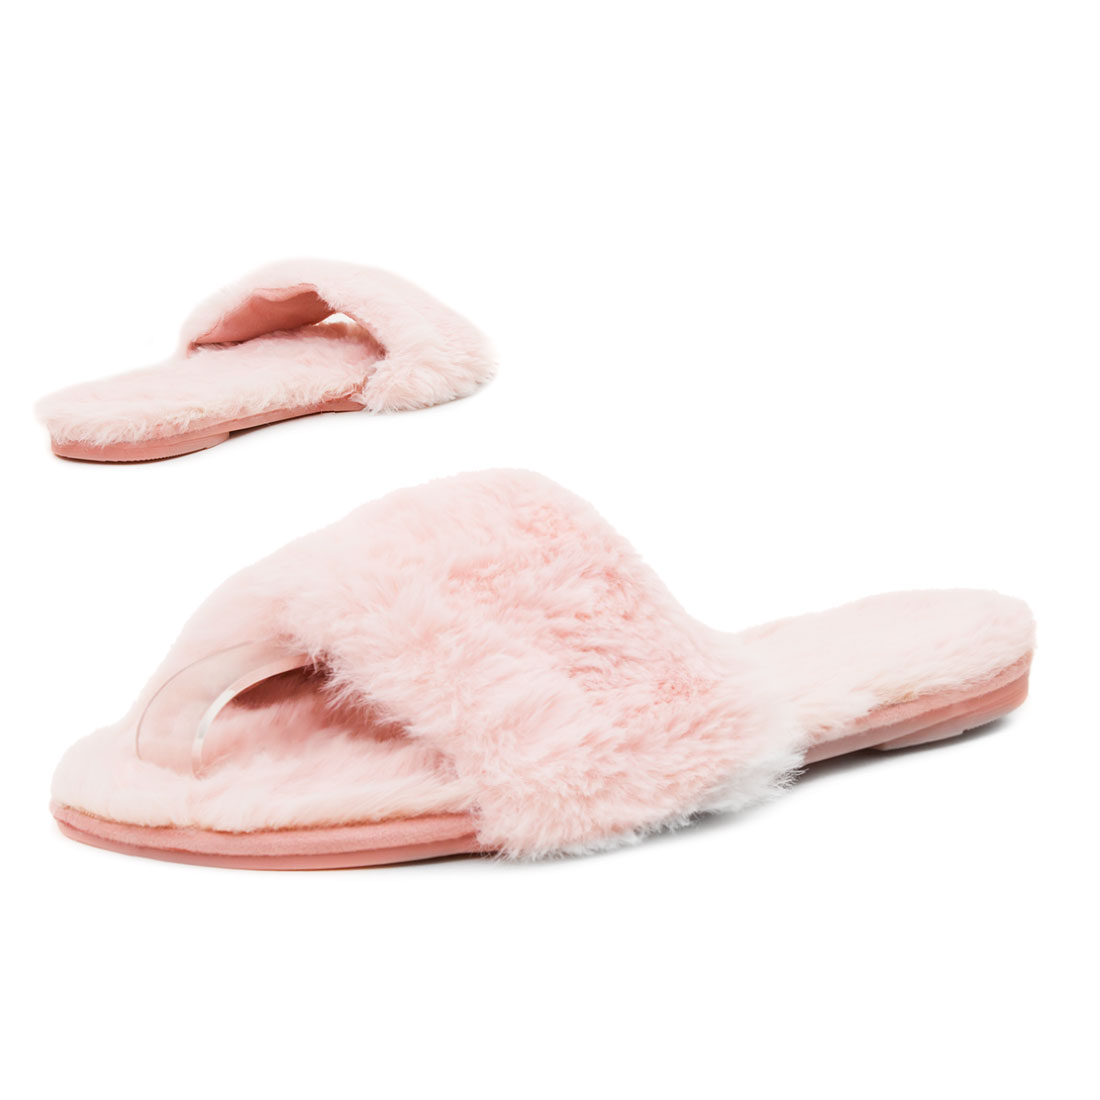 damen hausschuhe pl sch pantoffeln indoor slipper mit. Black Bedroom Furniture Sets. Home Design Ideas